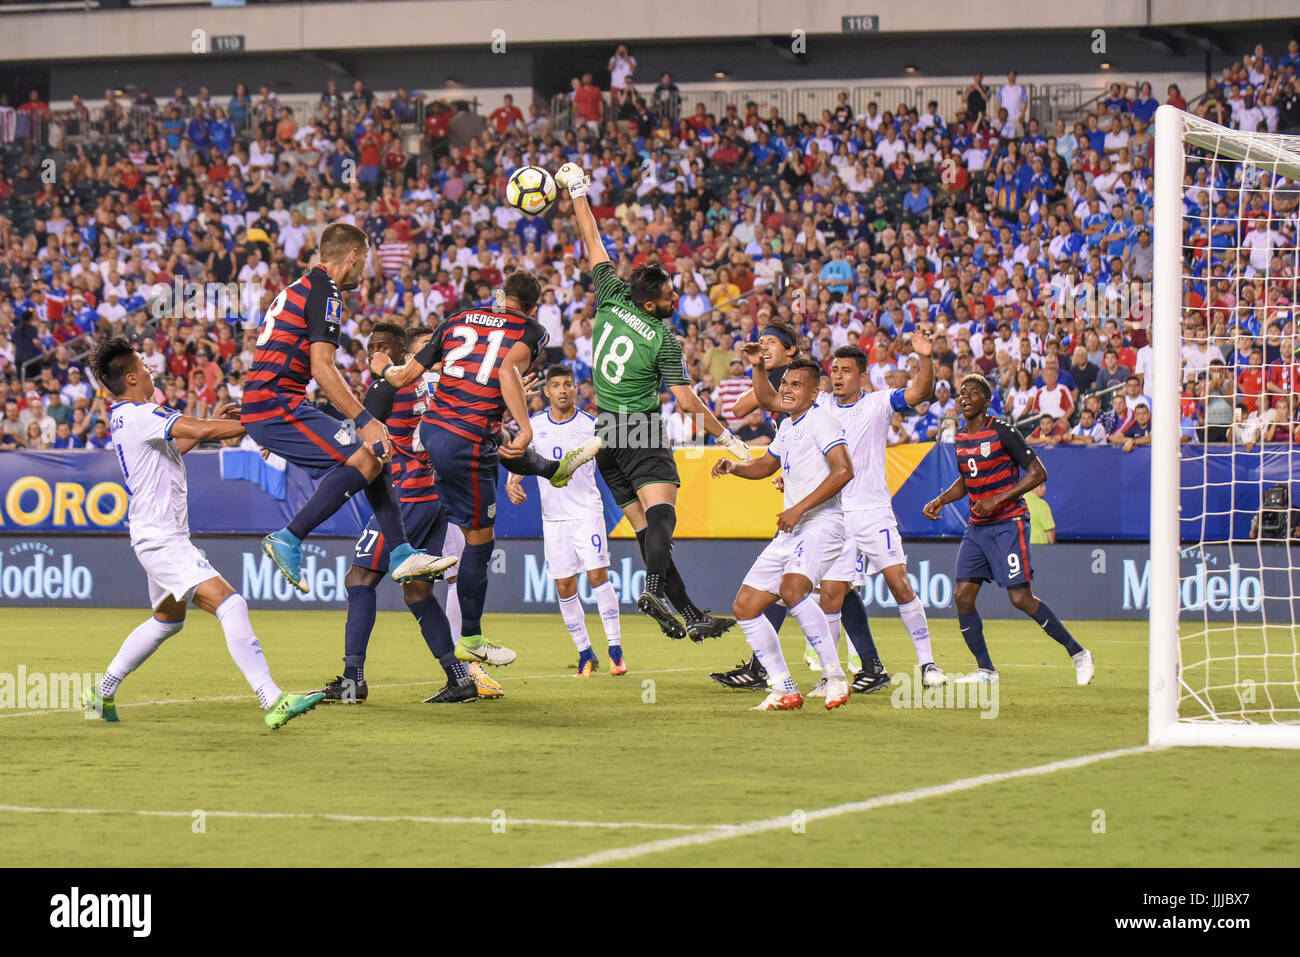 Derby Carrillo makes a save as Clint Dempsey and Matt Hedges of the USMNT United States Mens National Team attempt - Stock Image